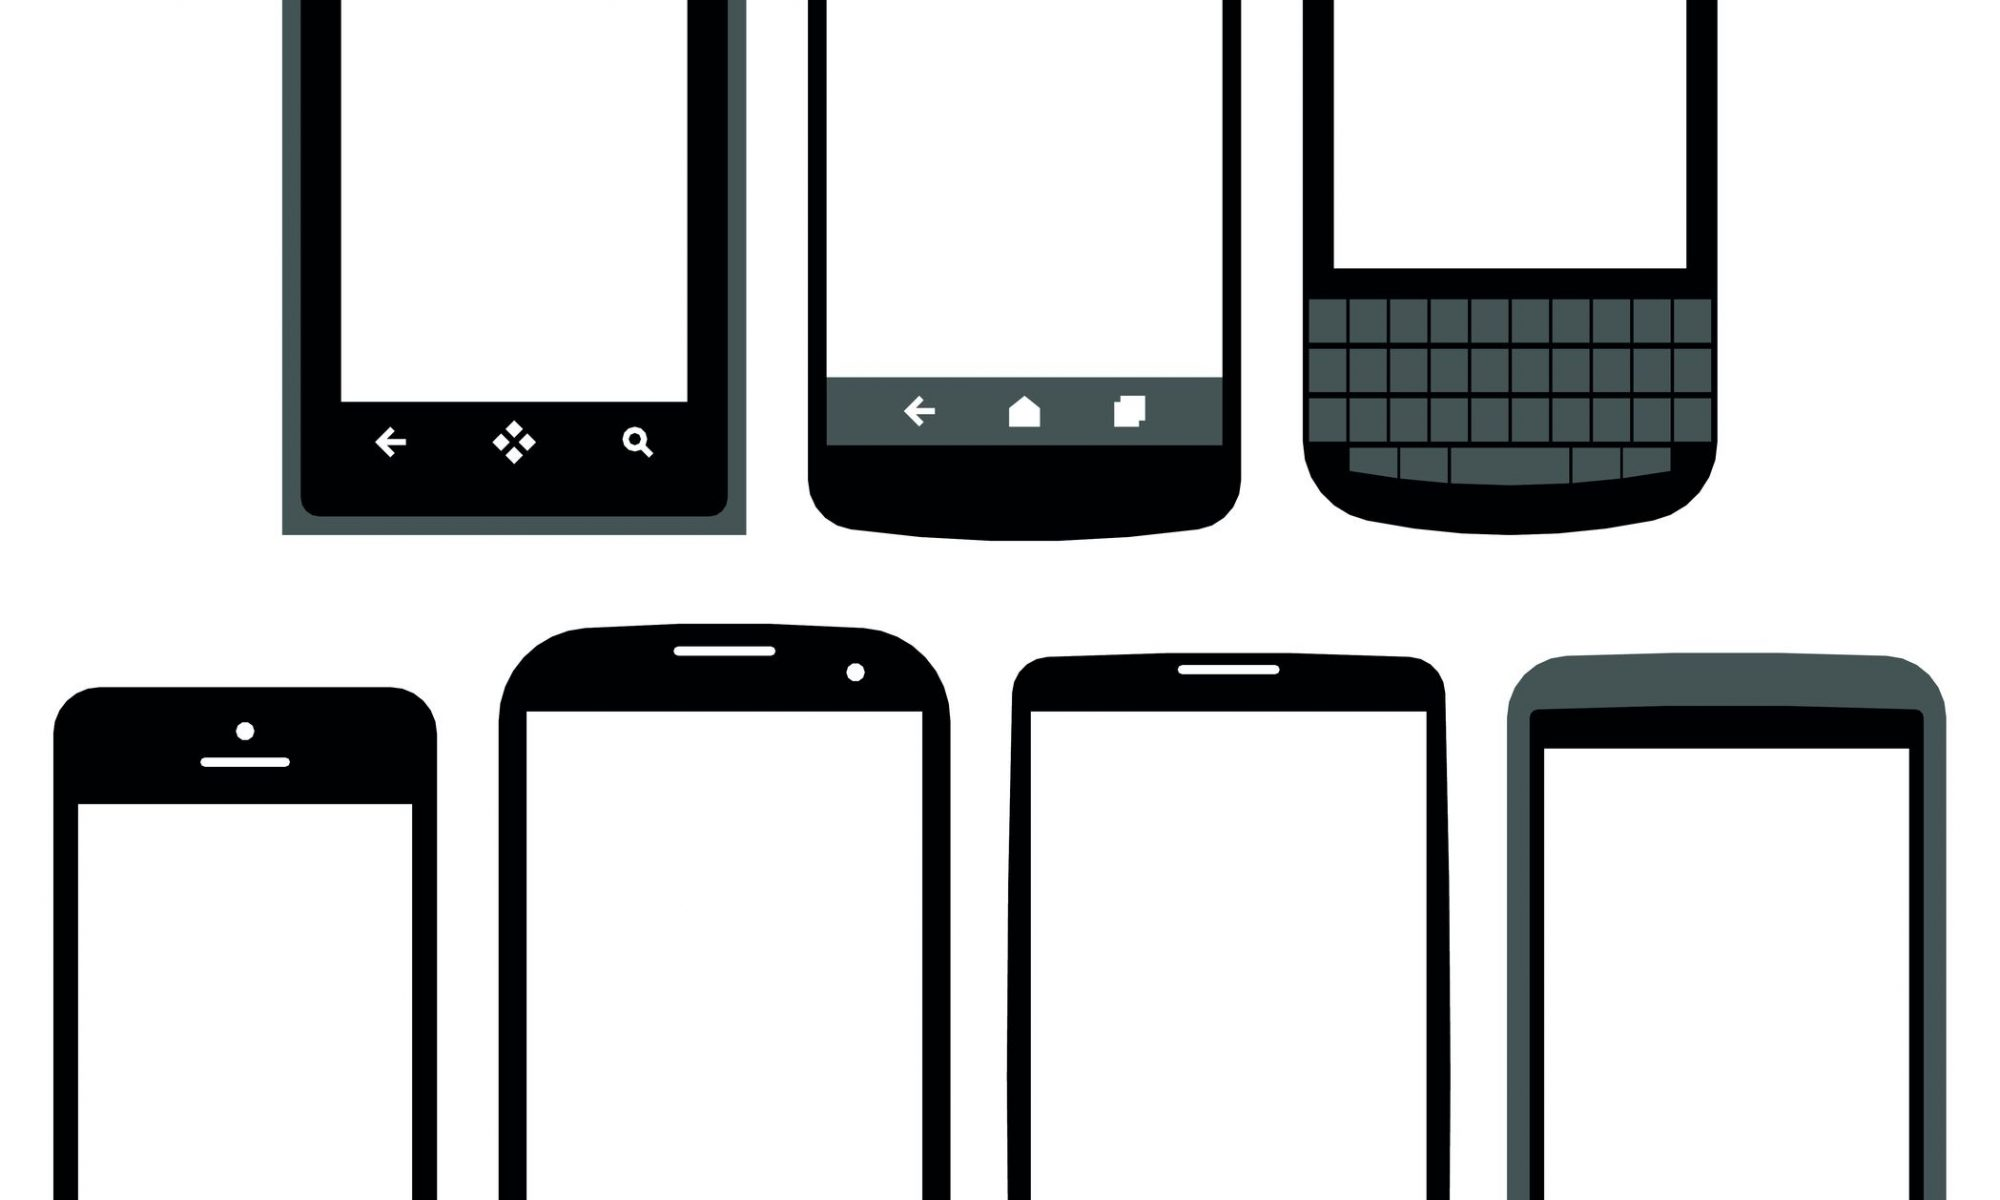 Mobile devices robot tip. Cellphone clipart informative